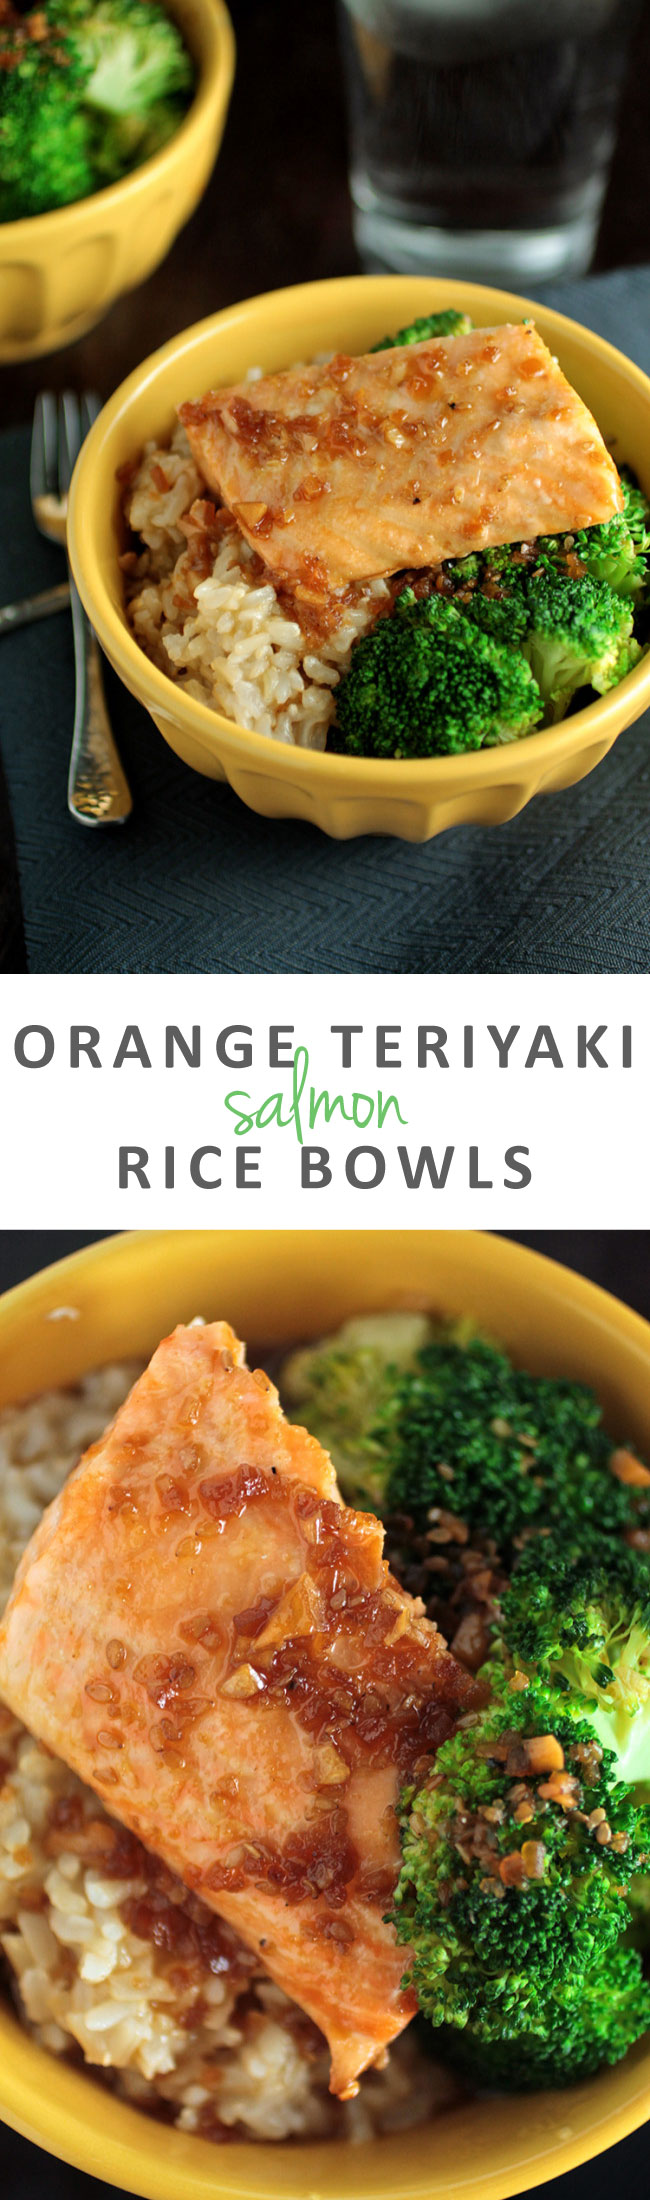 Orange Teriyaki Salmon Rice Bowls | This easy, healthy recipe will help you have dinner on the table in no time! Delicious salmon and fresh vegetables come together for a simple, quick weeknight meal.